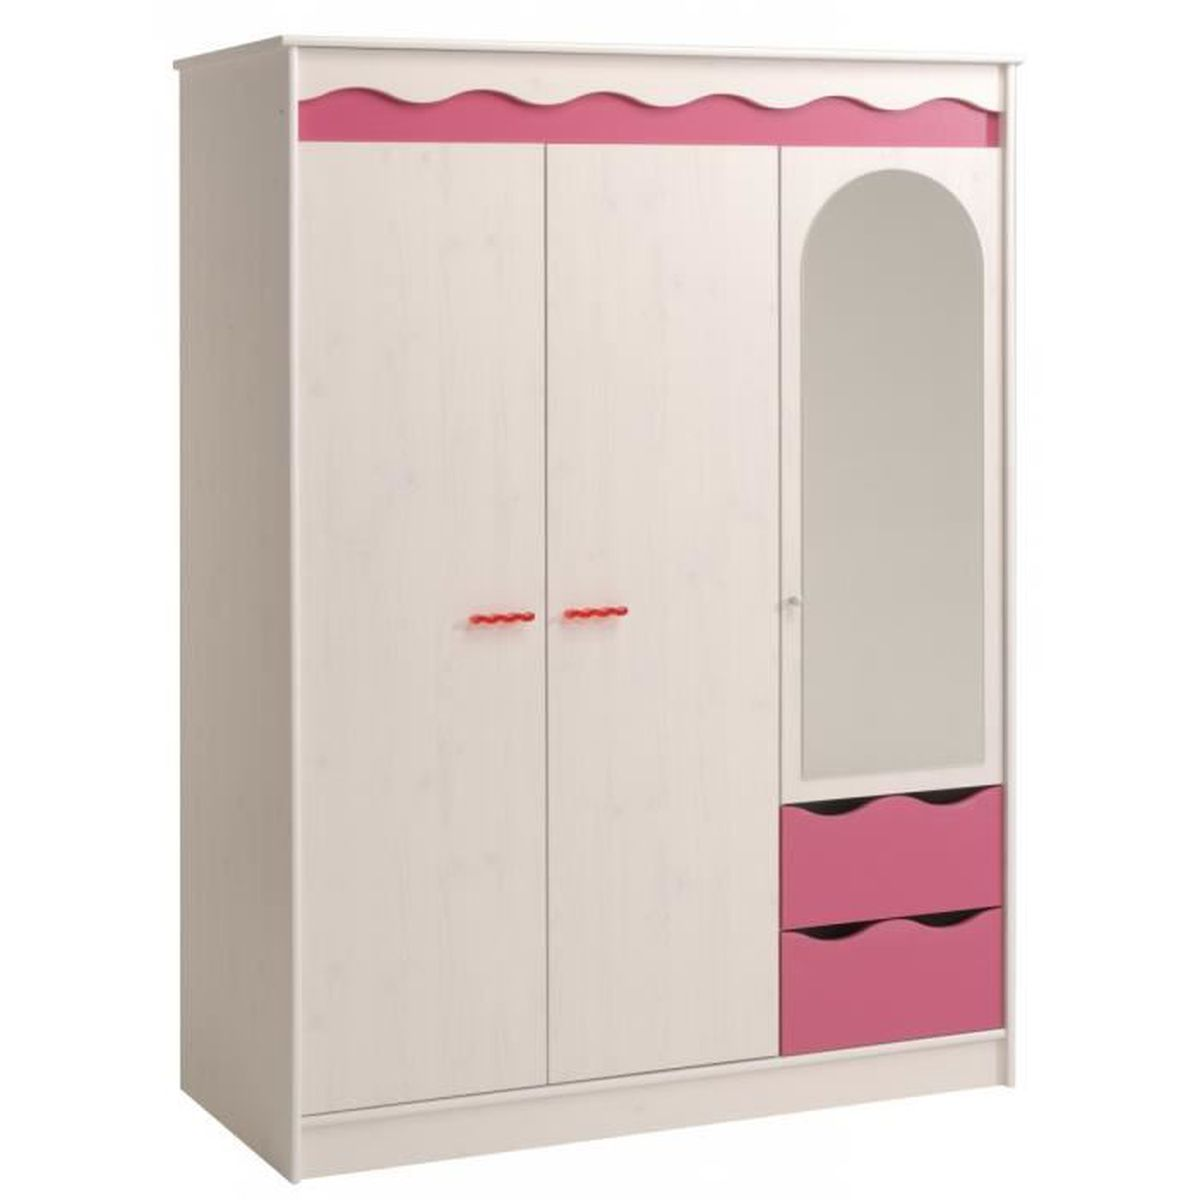 Beautiful Armoire Chambre Fille Pas Cher Images - Design Trends ...